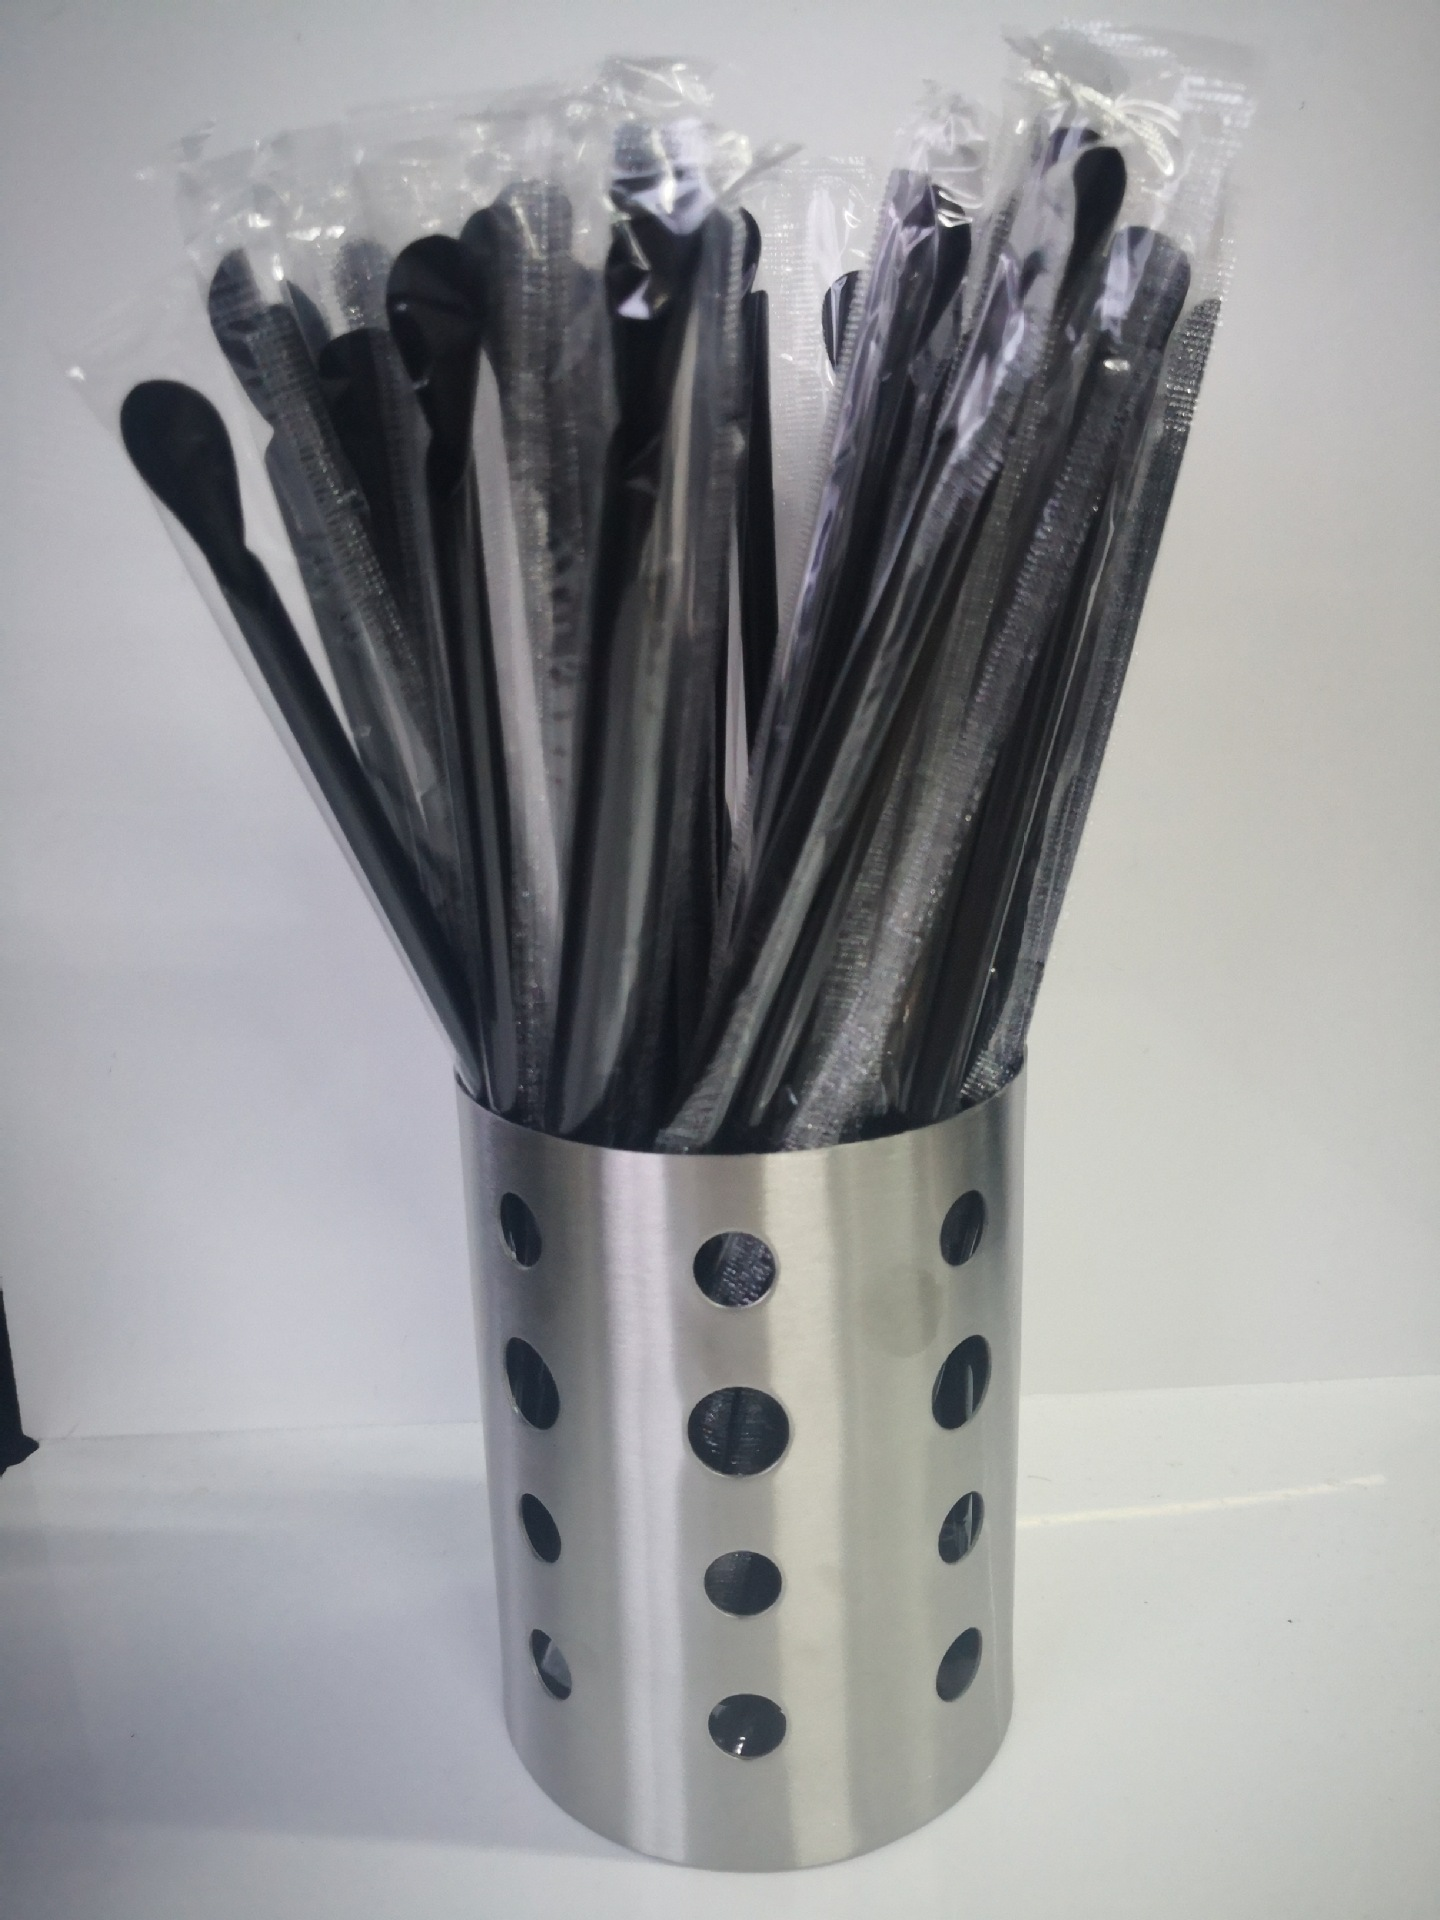 Currently Available Black And White With Pattern 24 Cm Spoon-Shaped Straw 100 Sticks Sand Ice Milk Tea Drink Straw Manufacturers